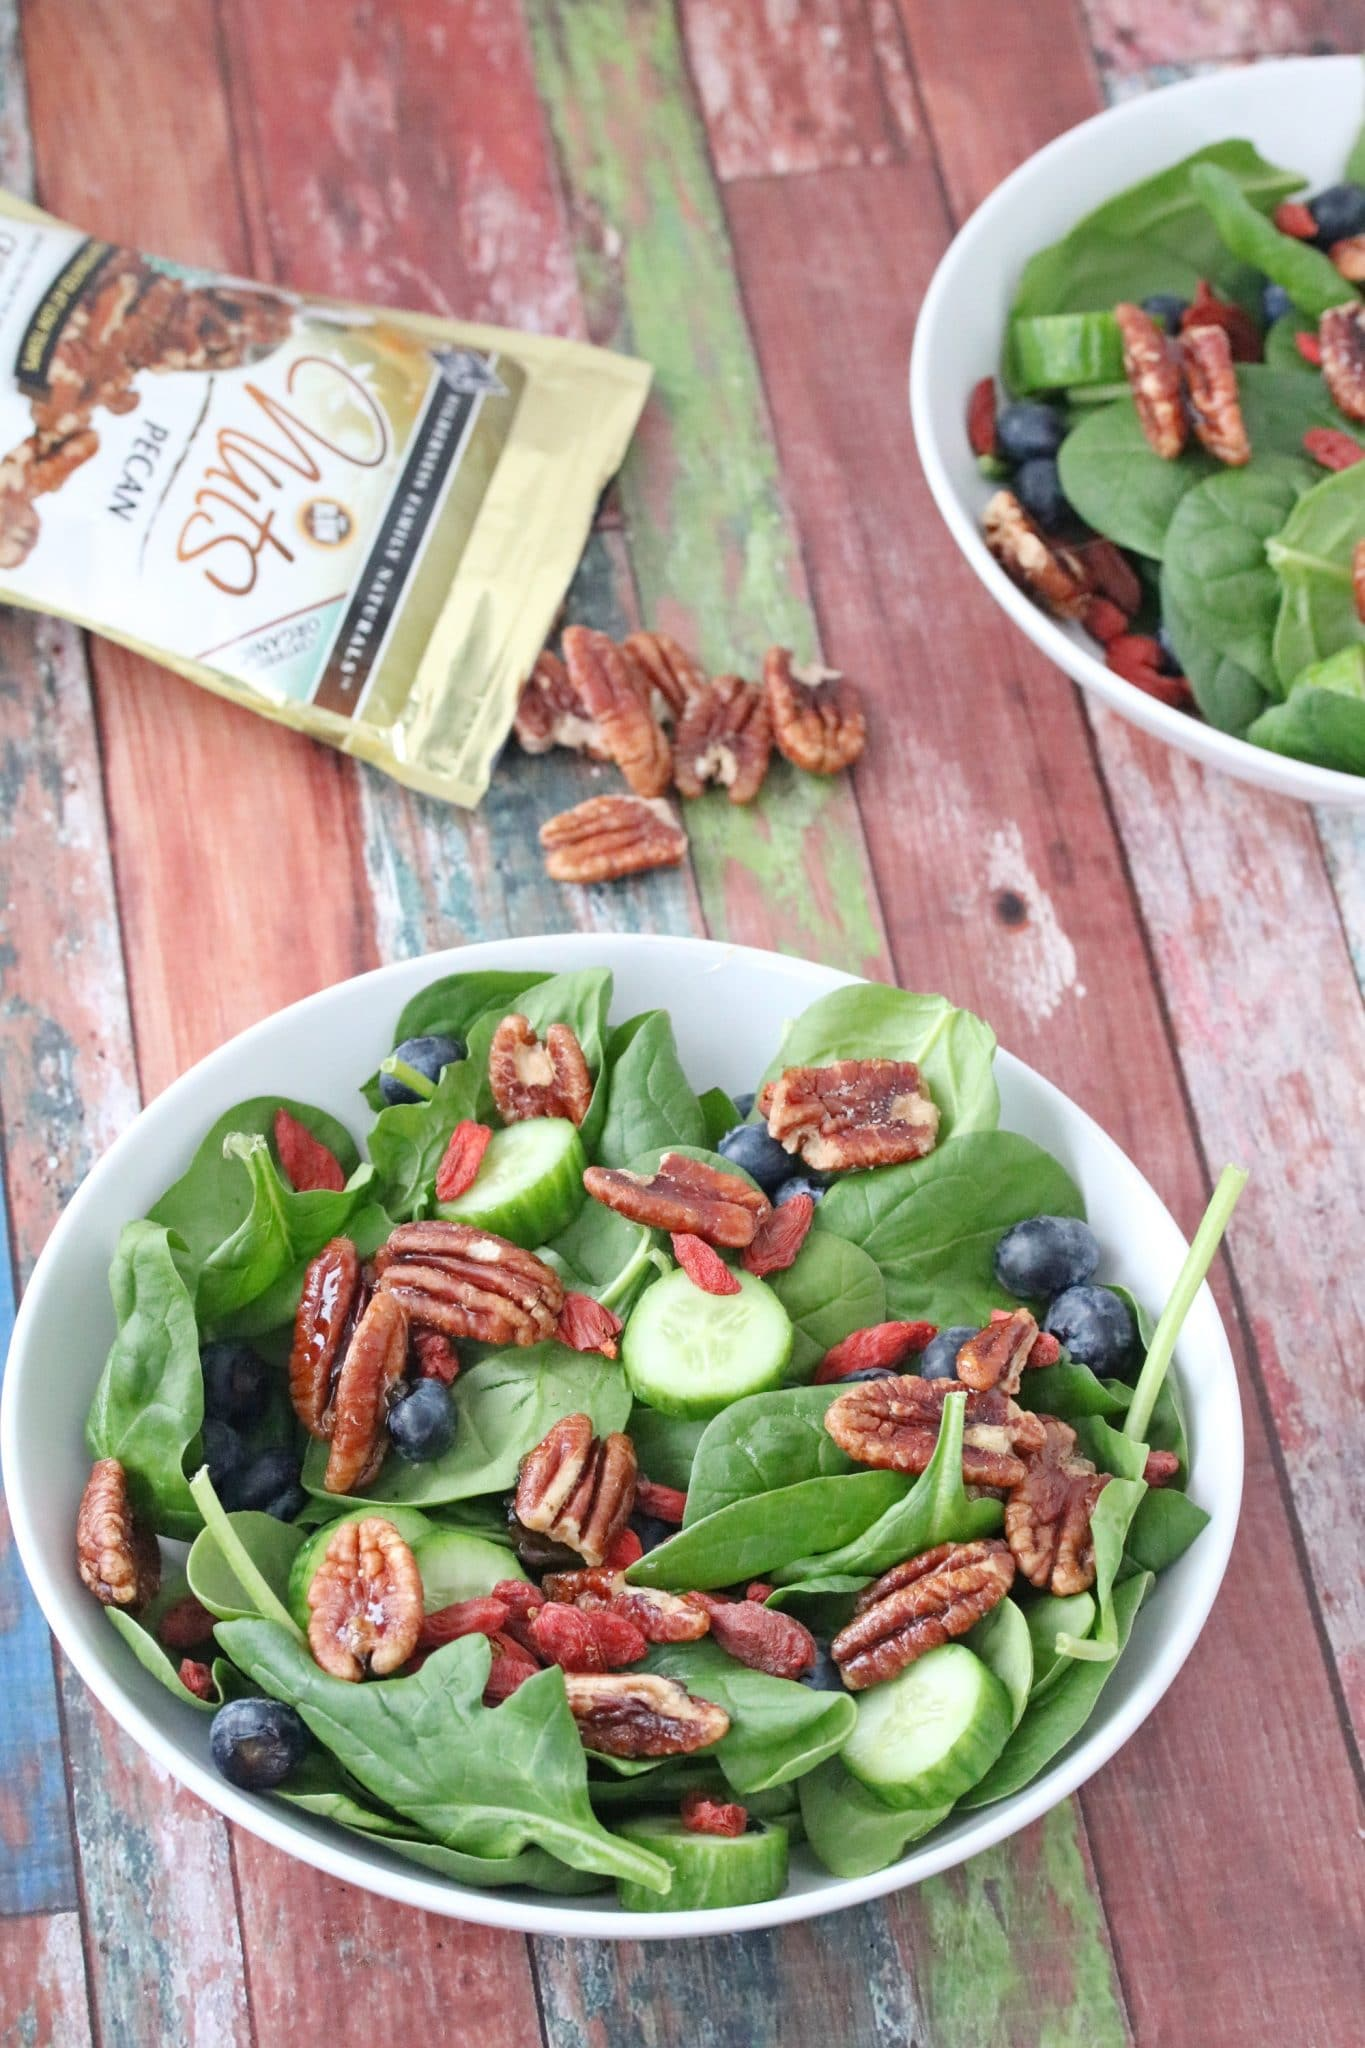 Spinach salad with pecans in a white bowl with another bowl of salad behind it and pecans on the table